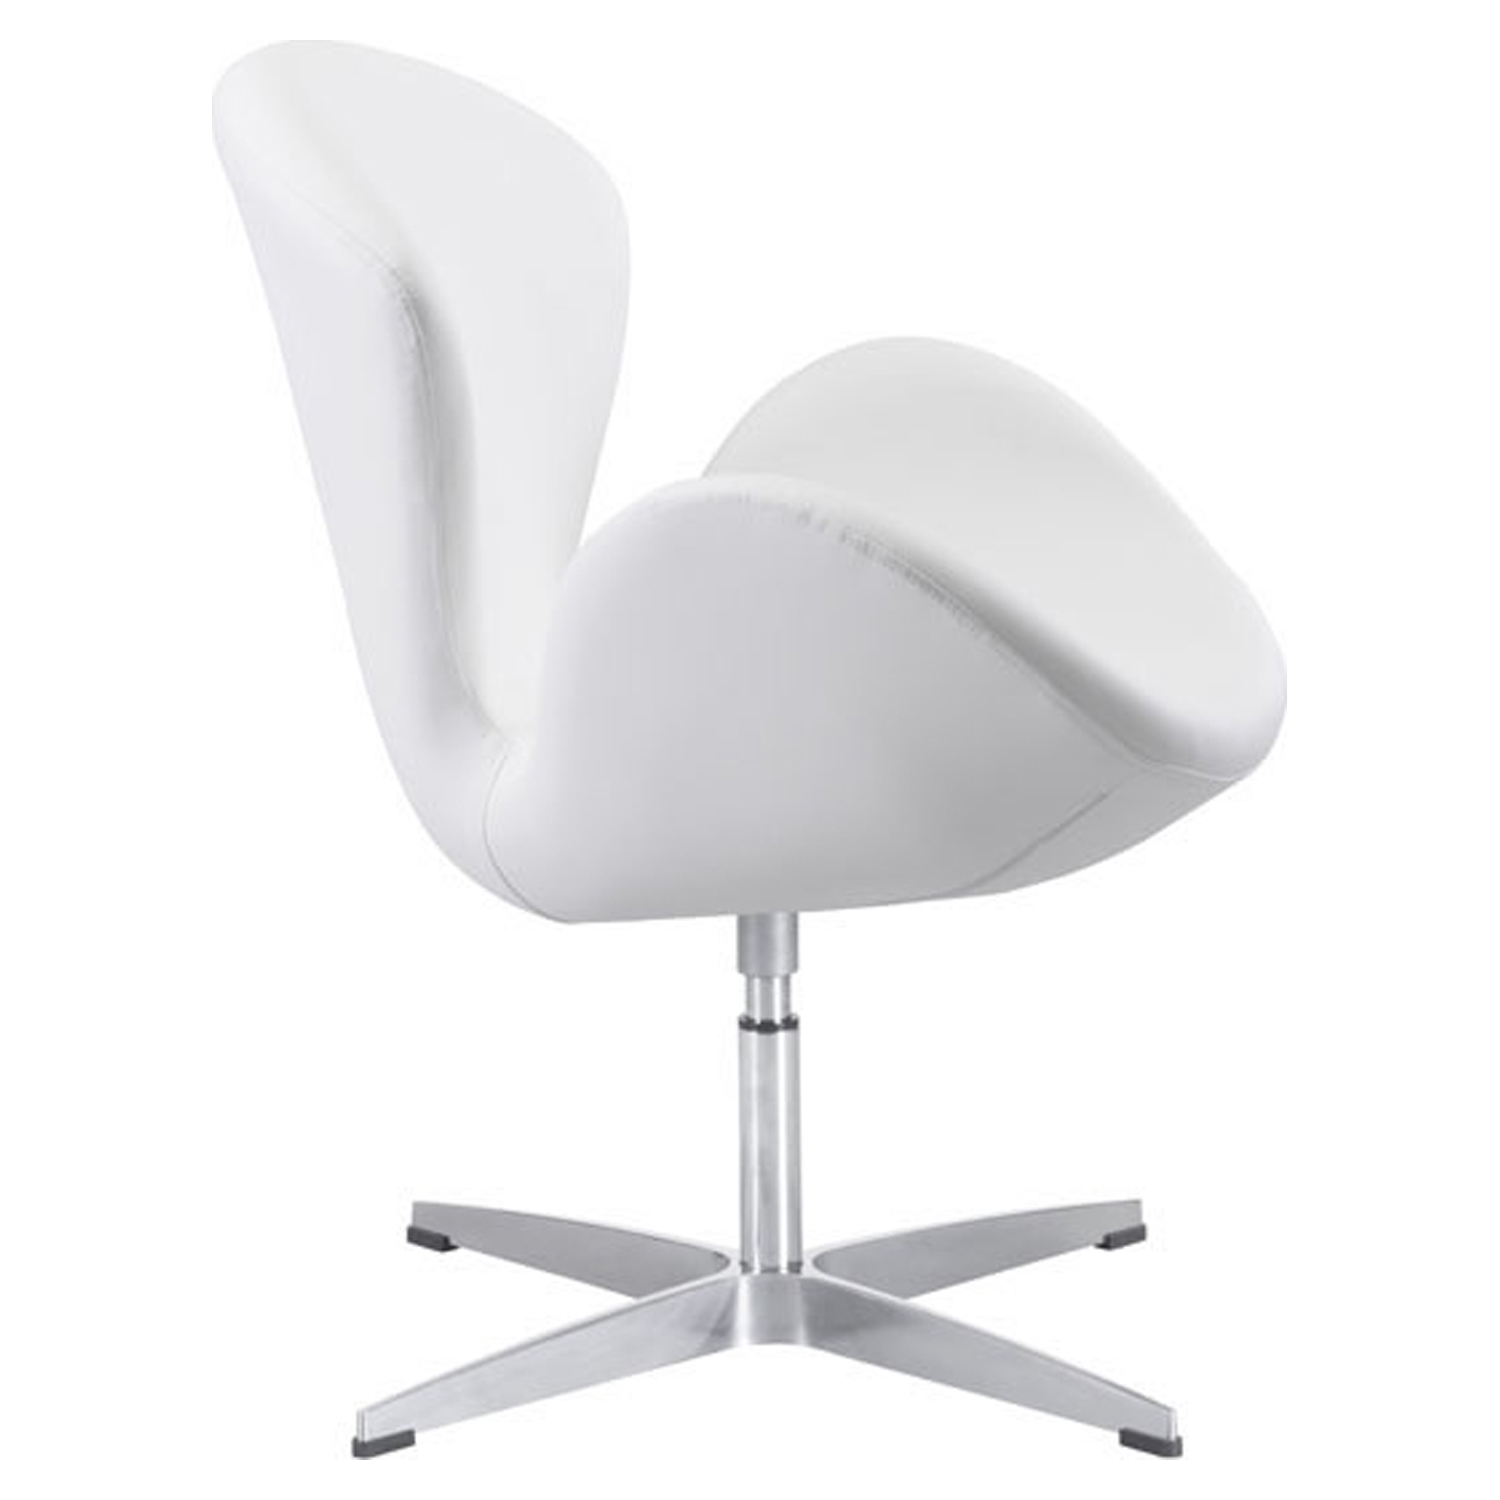 Pori Arm Chair - White - ZM-500314